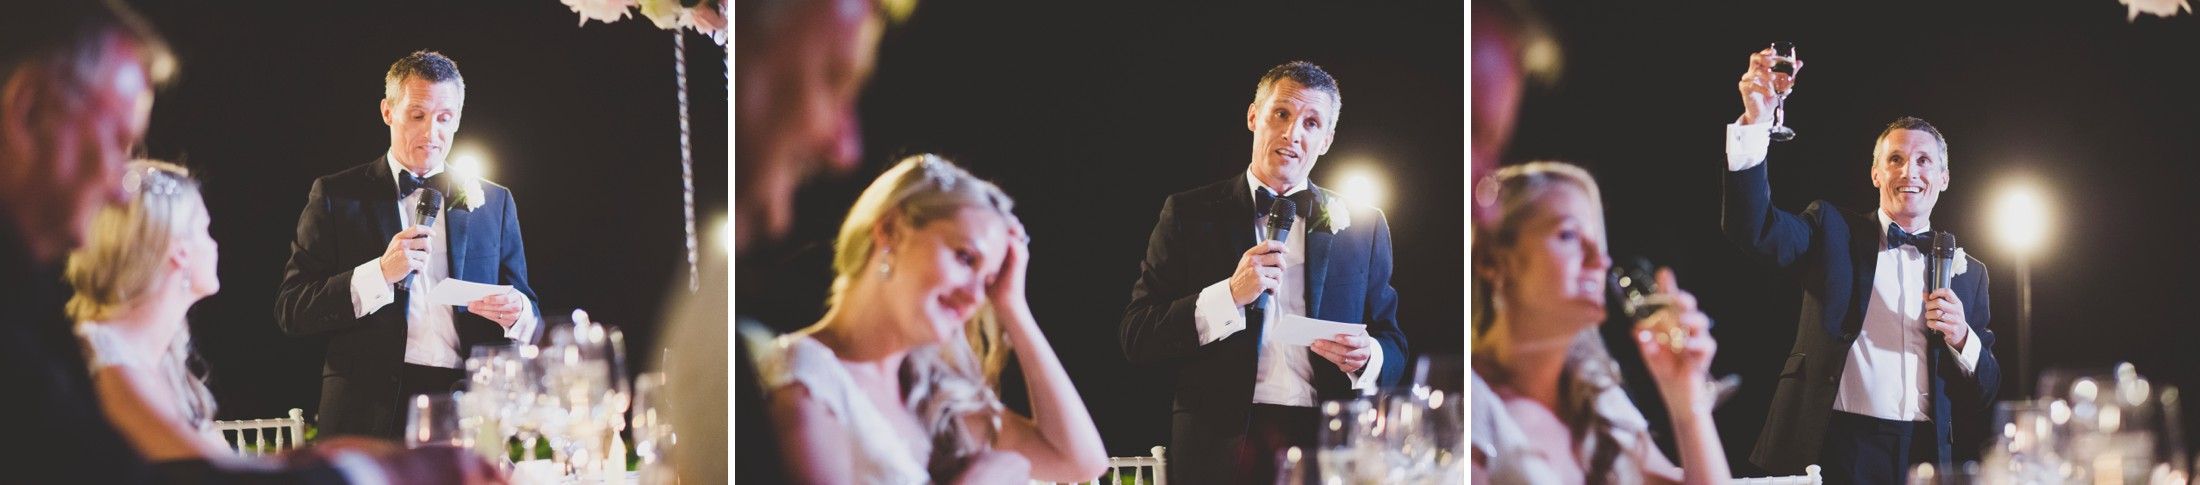 collage groom during his speech